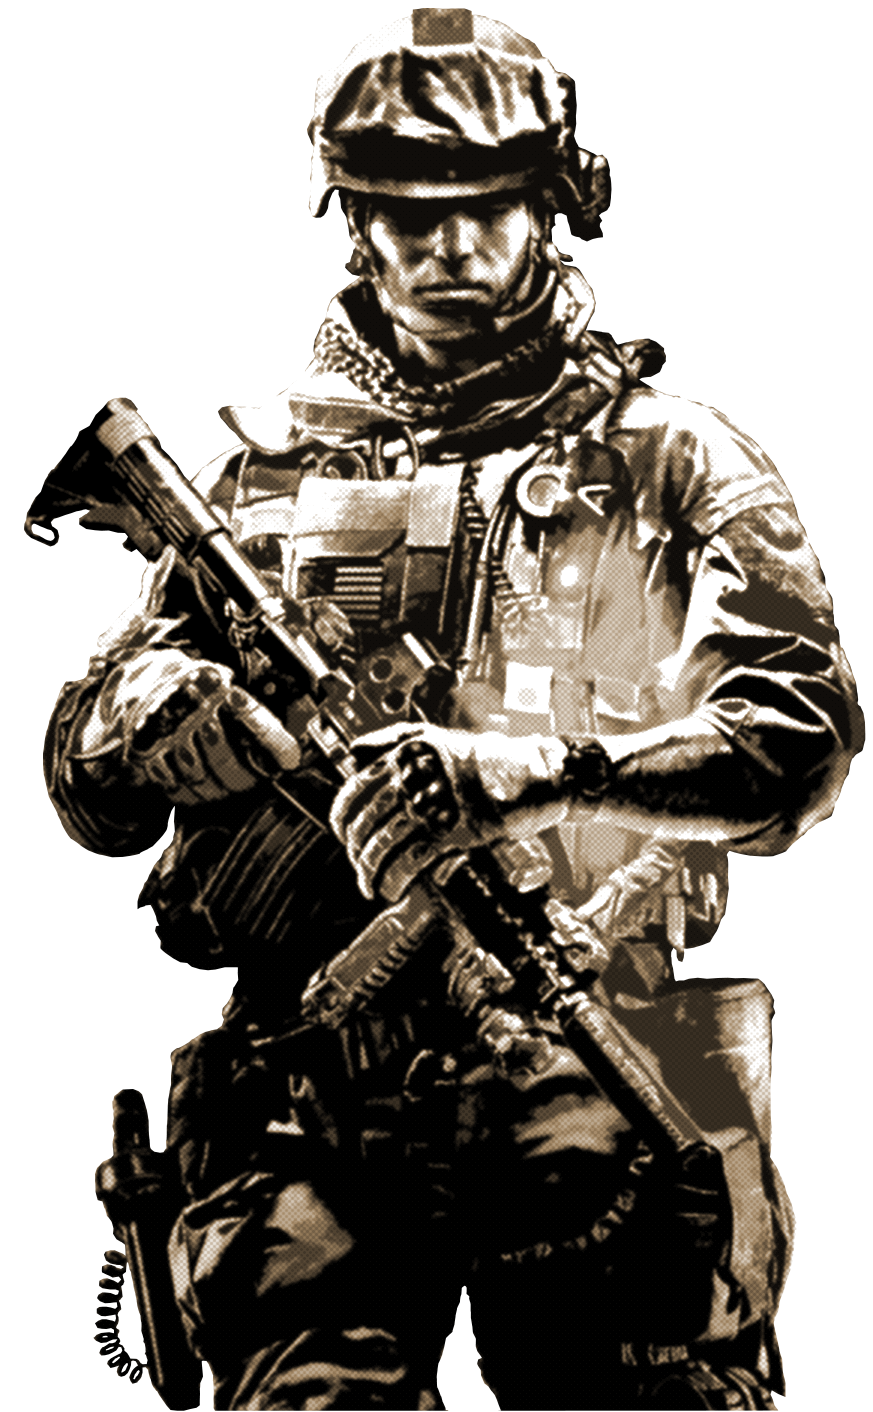 Army soldiers png. Soldier image purepng free